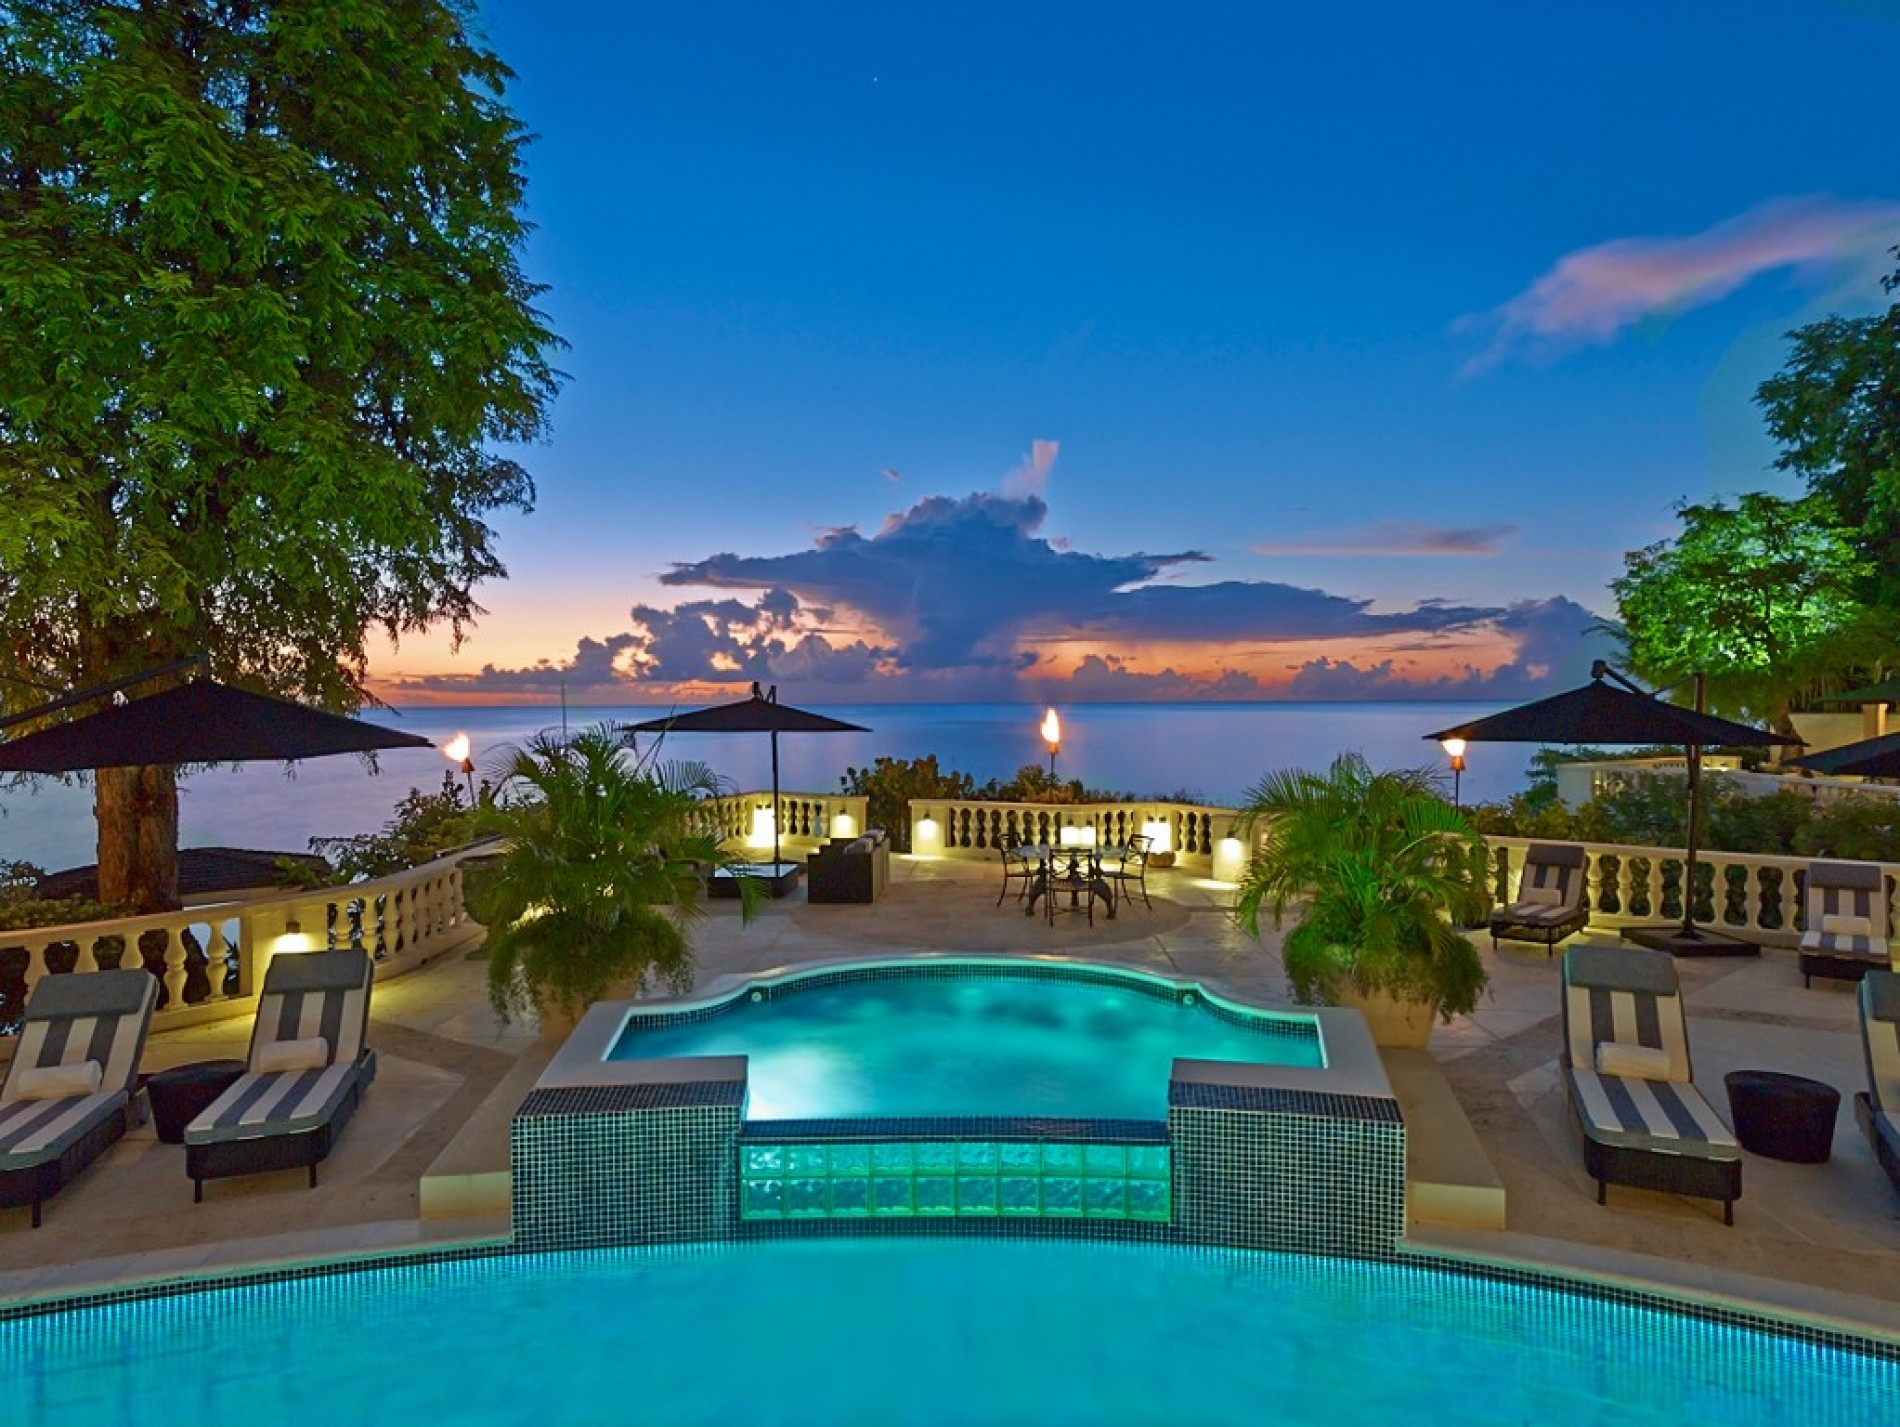 Cove spring house barbados 7 bed exceptional villas for The cove house